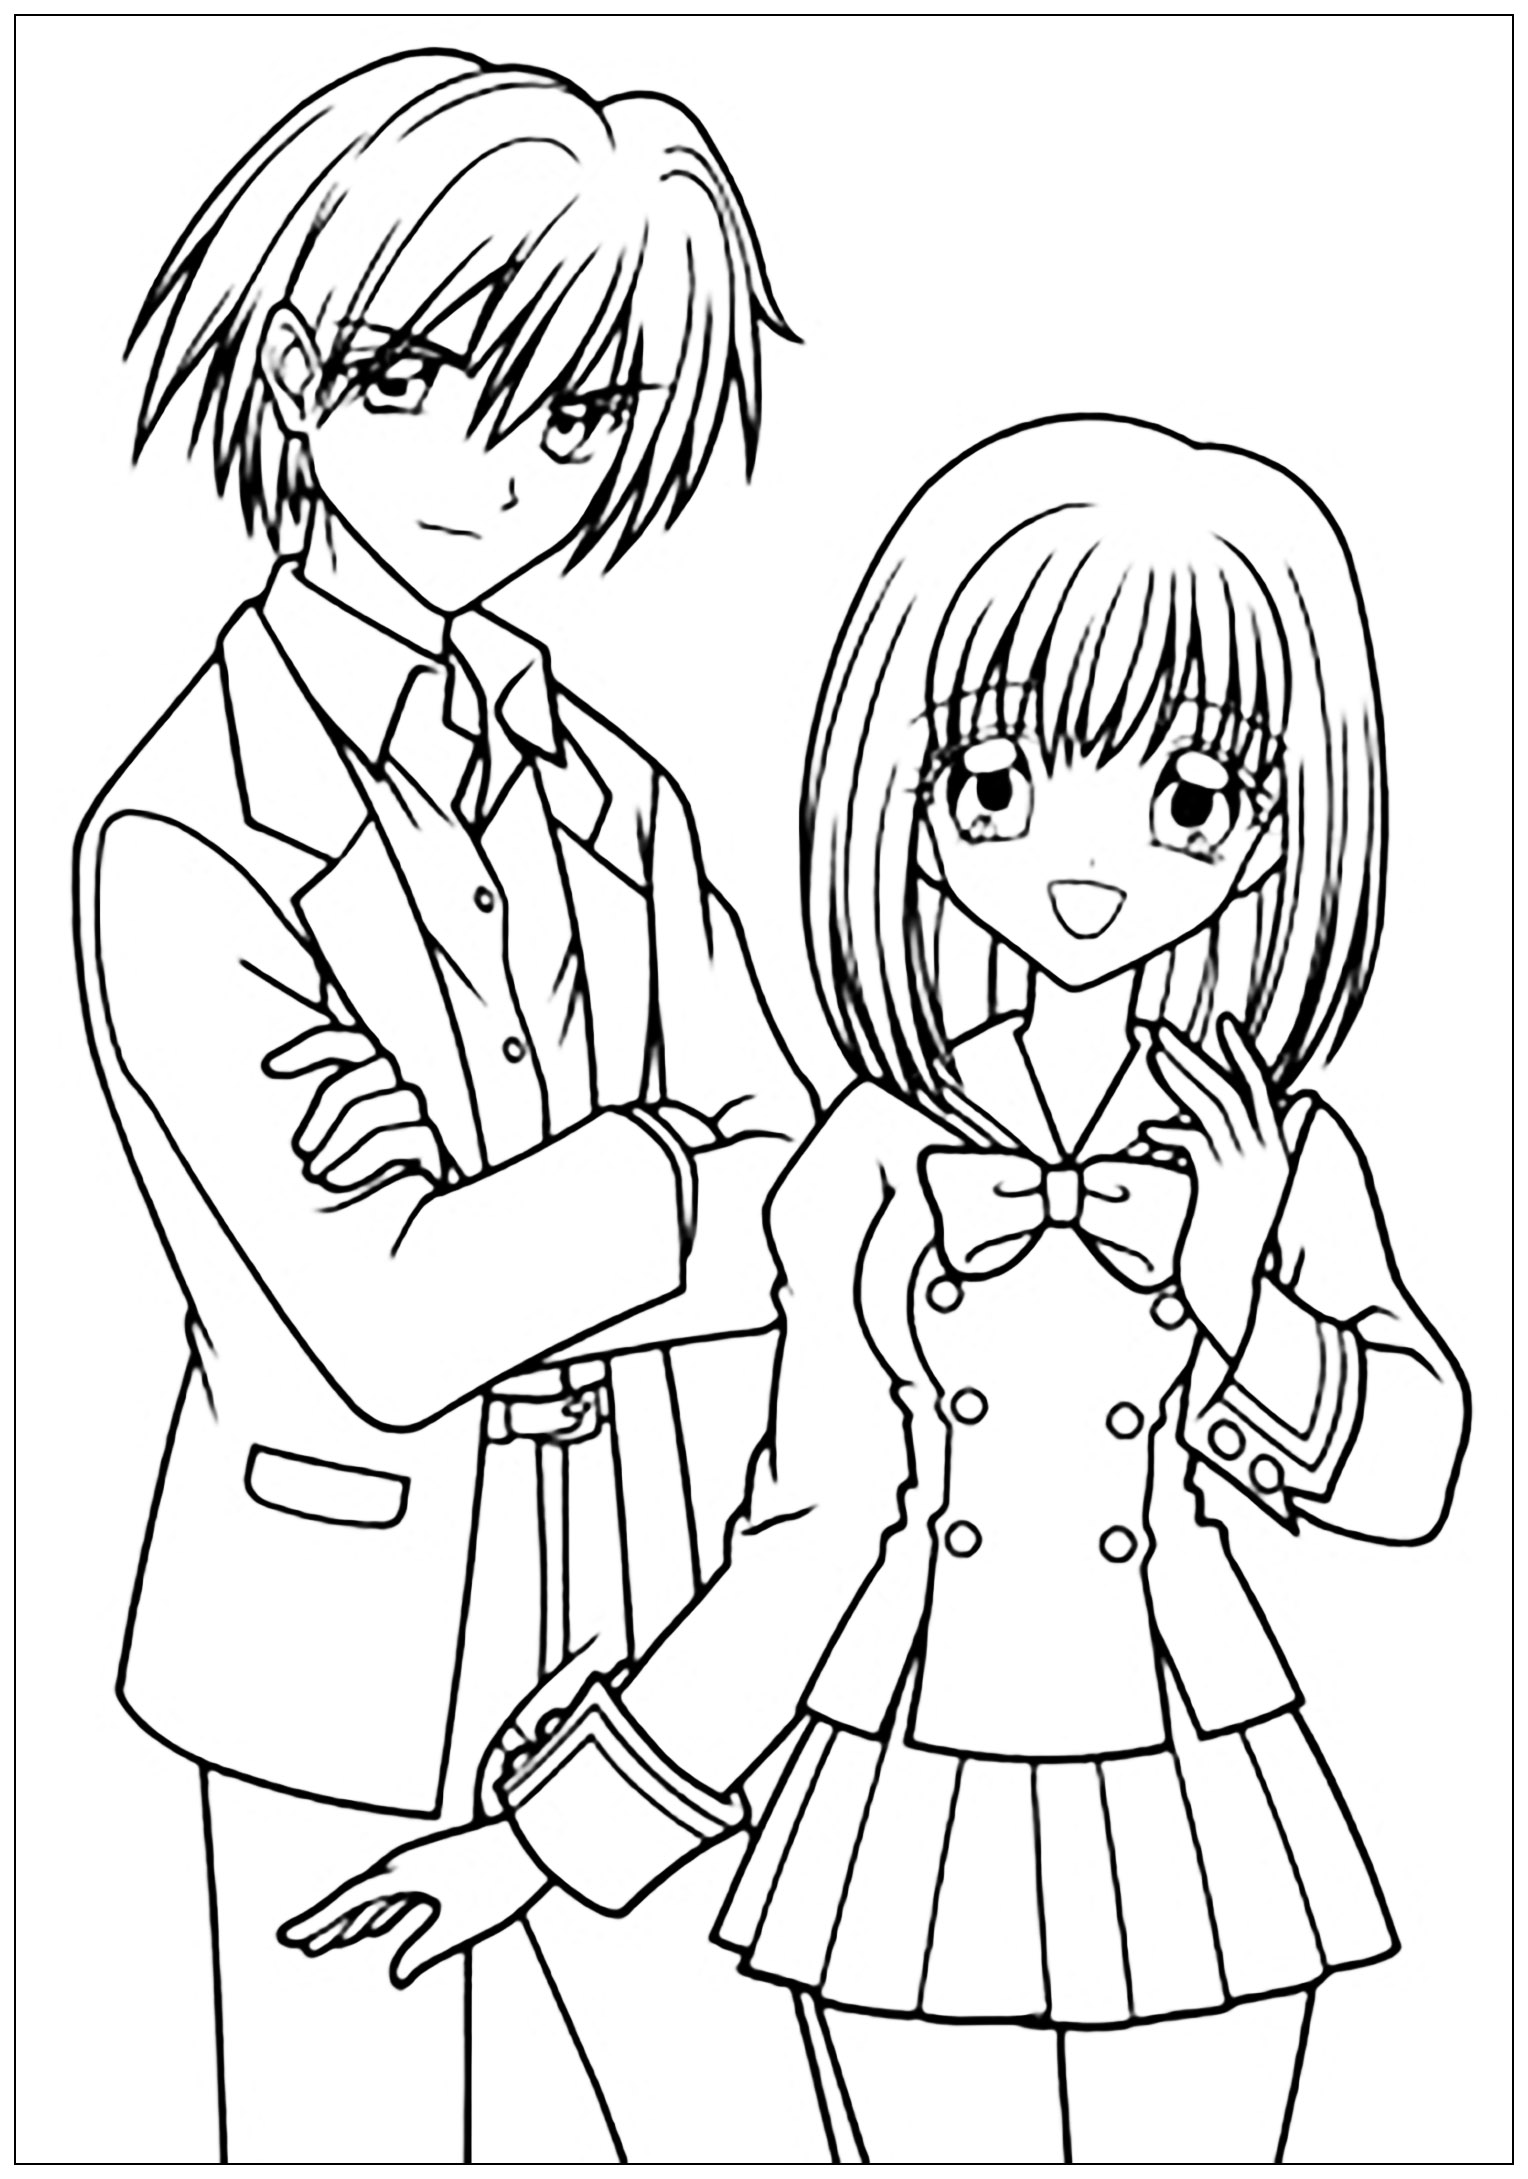 Manga drawing boy and girl in school